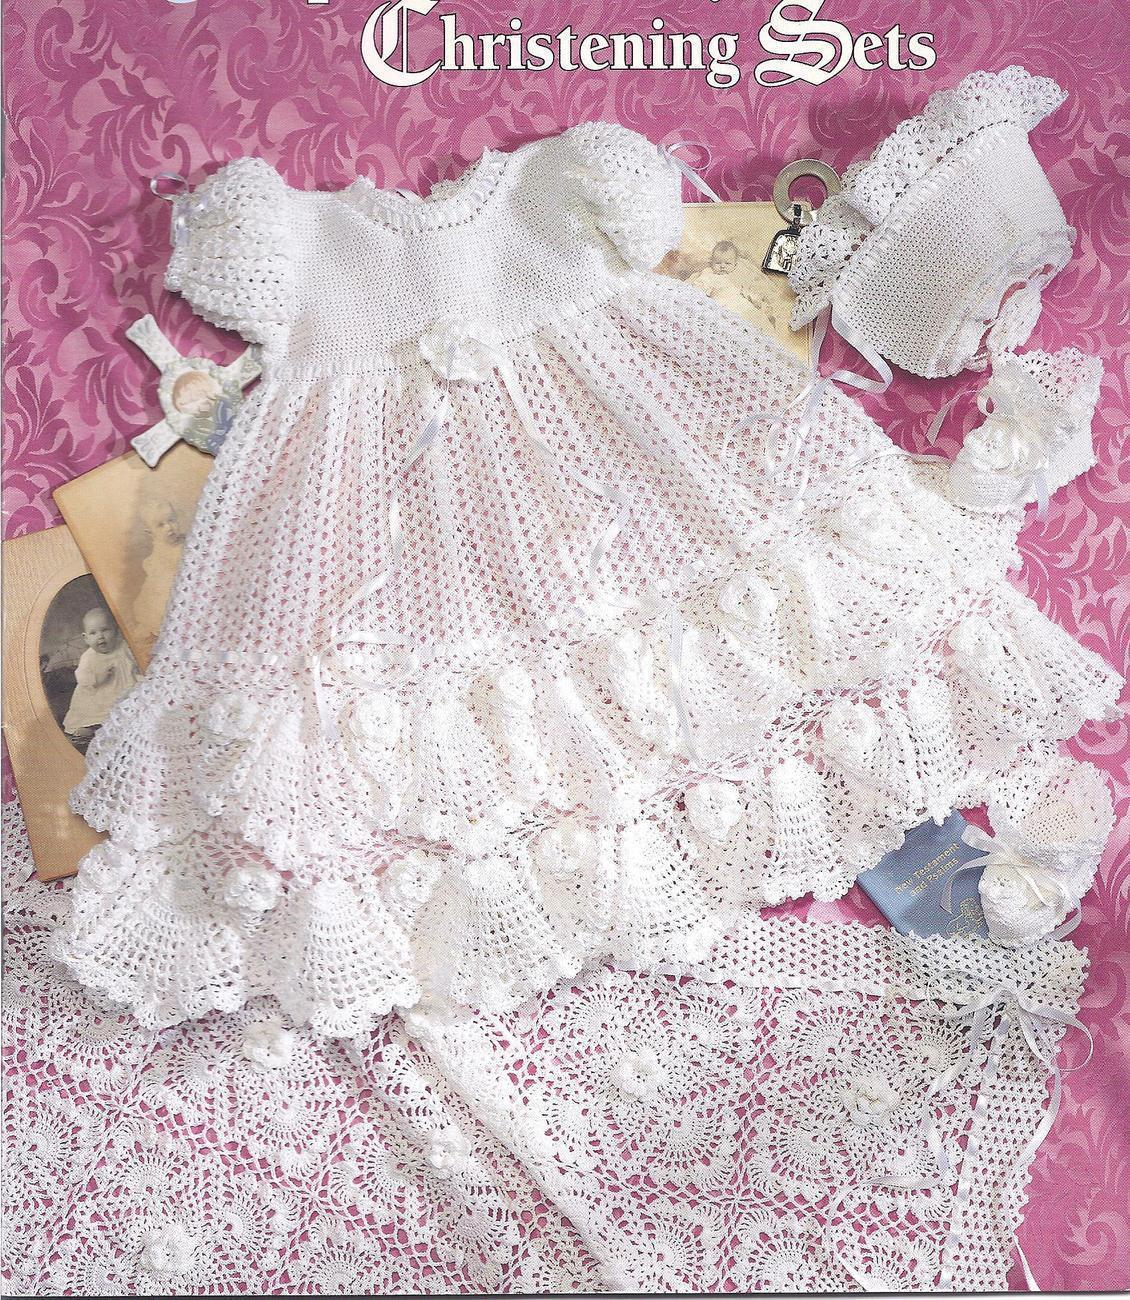 Precious Heirloom Christening Sets~Knit & Crochet Pattern